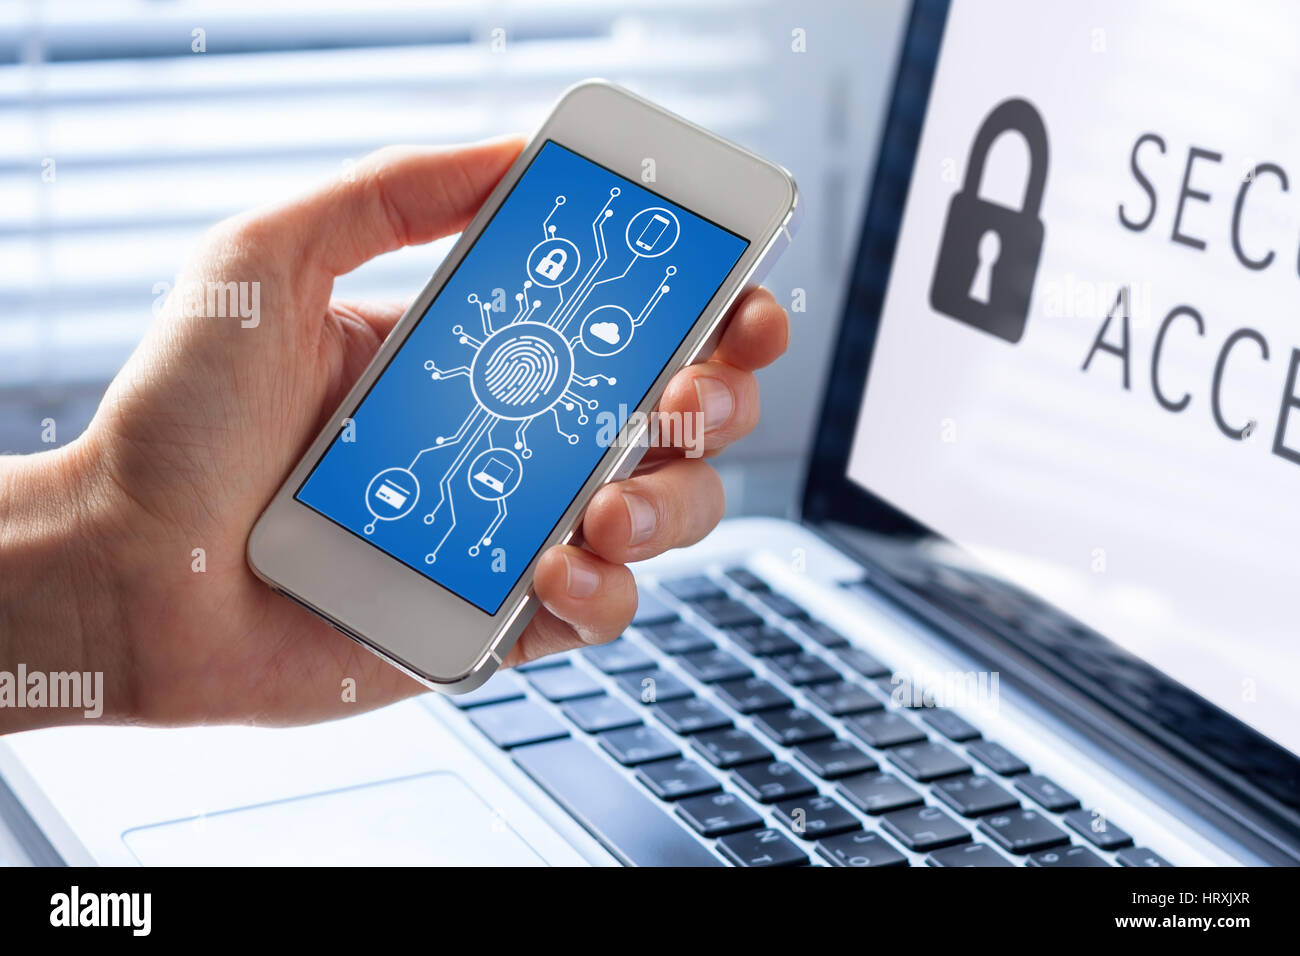 Mobile phone cyber security concept with a person showing